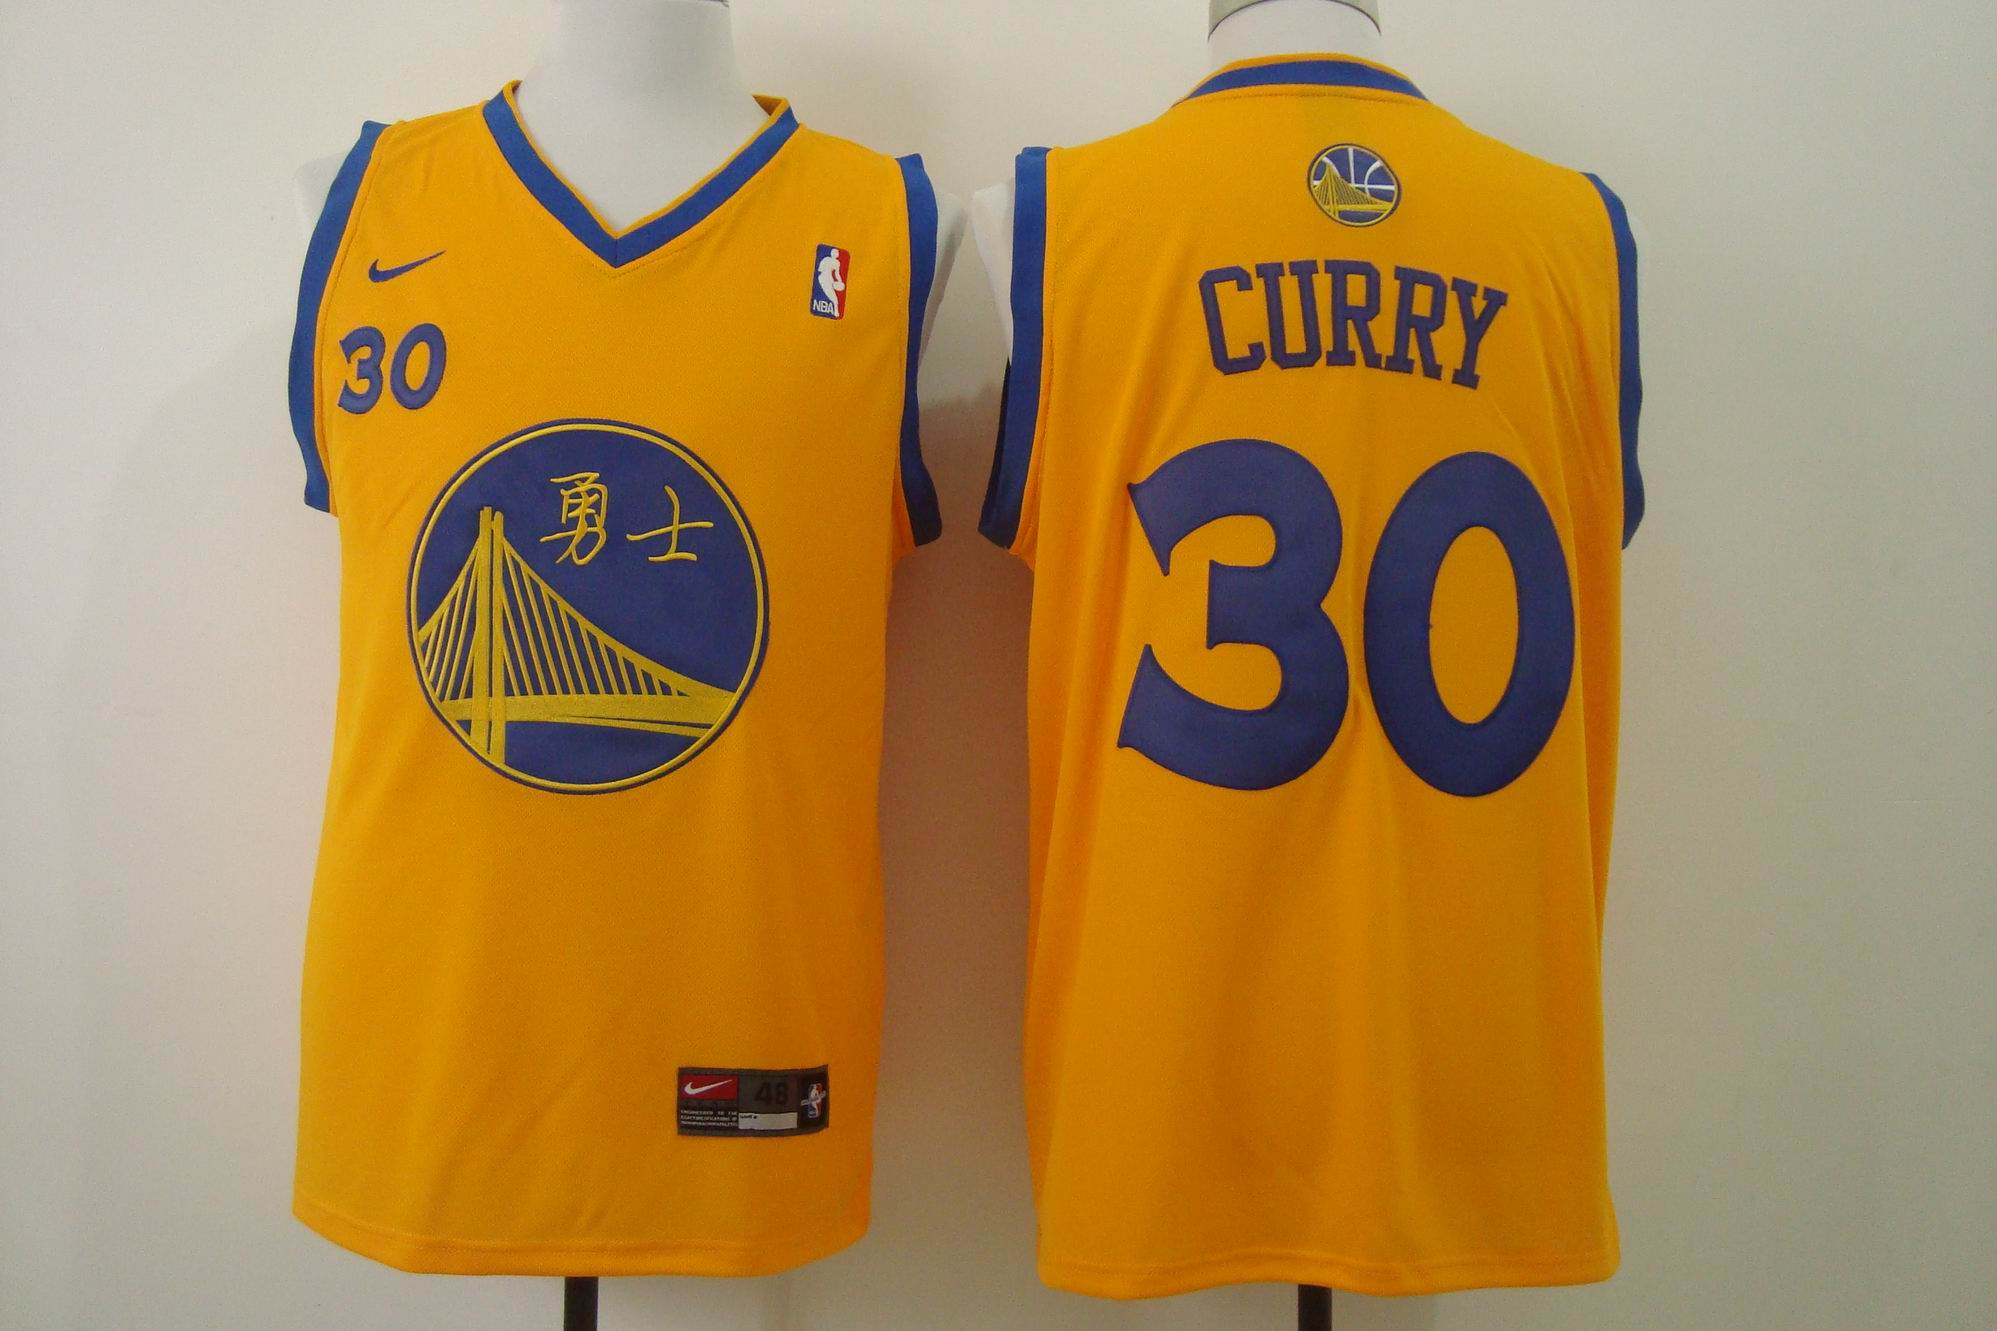 Men's Nike Golden State Warriors #30 Stephen Curry Chinese Yellow Authentic Stitched NBA Jersey